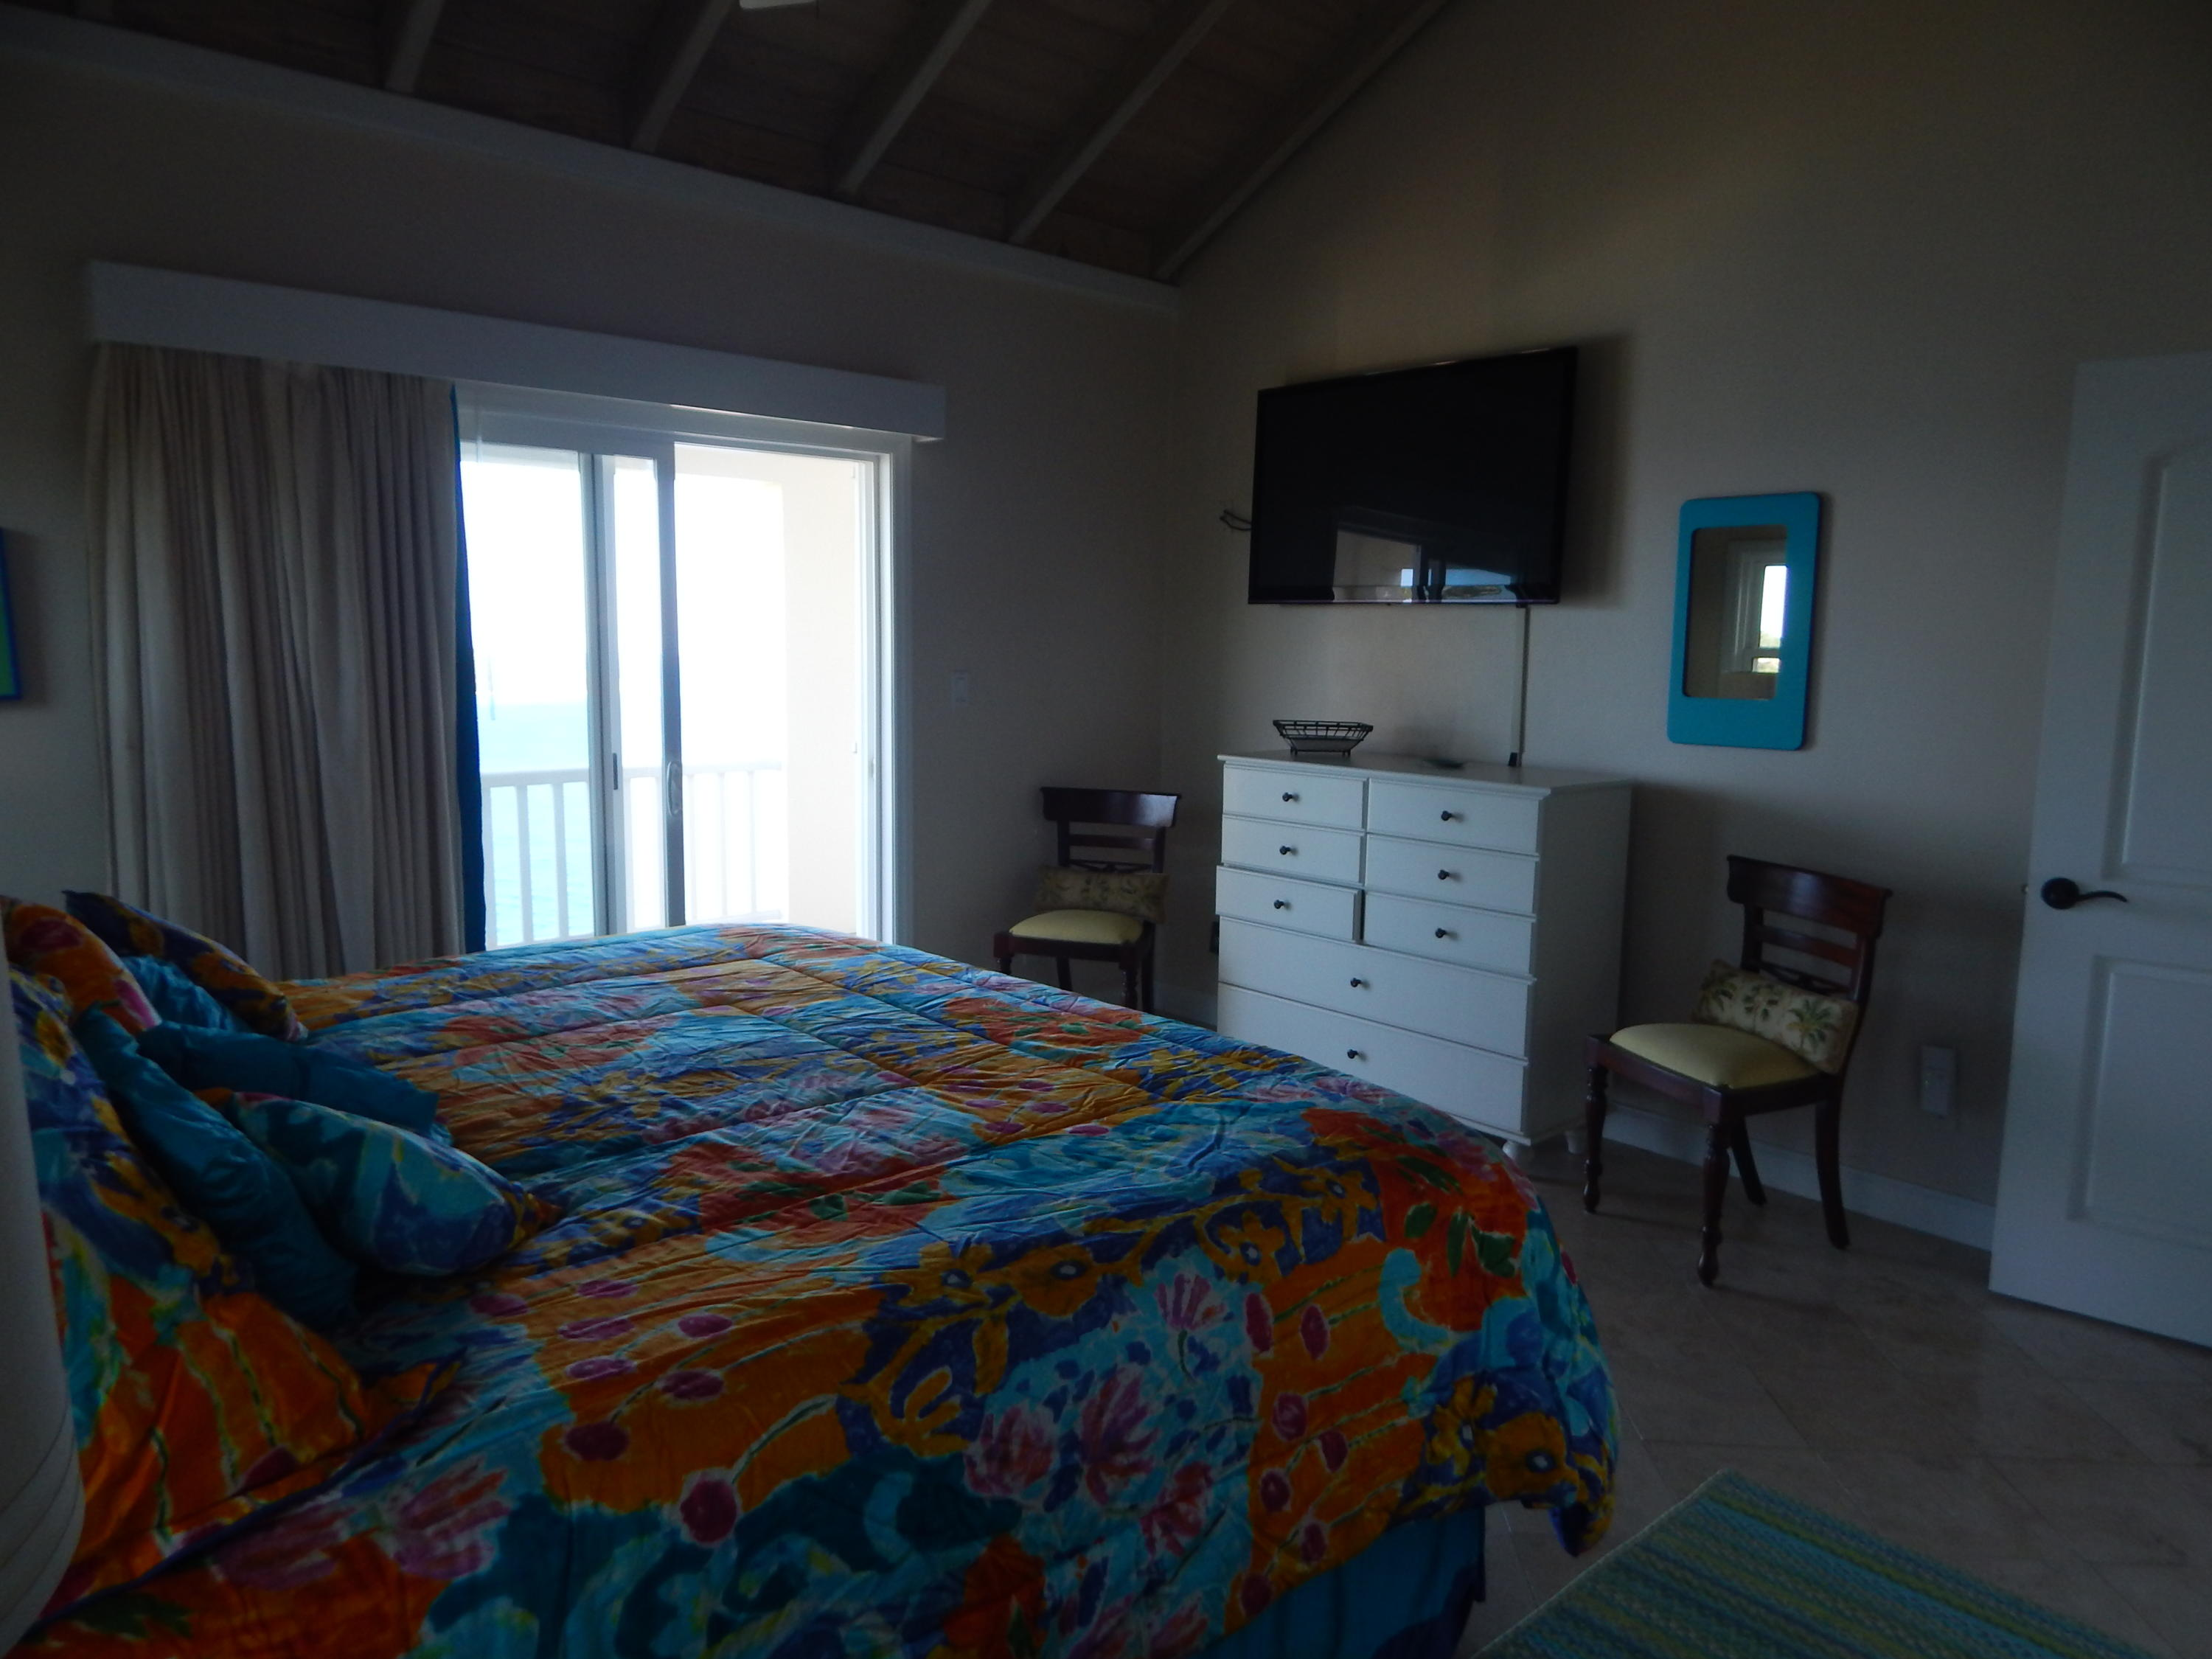 Additional photo for property listing at C-6-T 119 Lovenlund GNS C-6-T 119 Lovenlund GNS St Thomas, Virgin Islands 00802 United States Virgin Islands